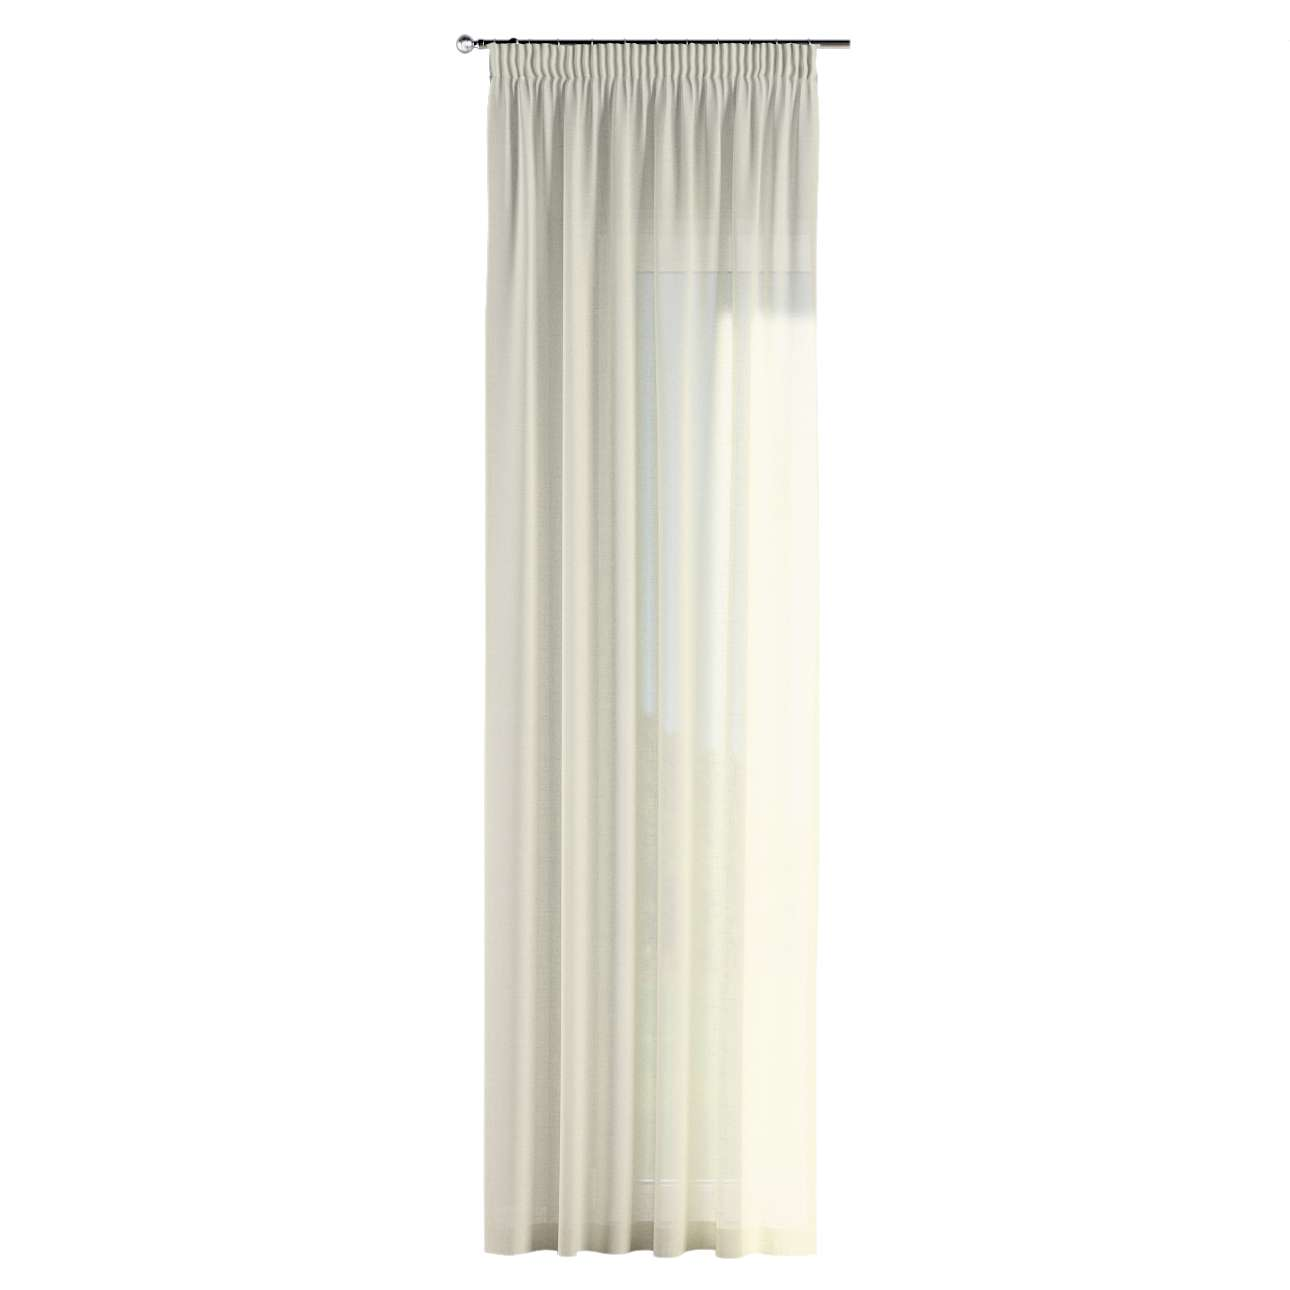 Pencil pleat curtains 130 x 260 cm (51 x 102 inch) in collection Romantica, fabric: 128-88